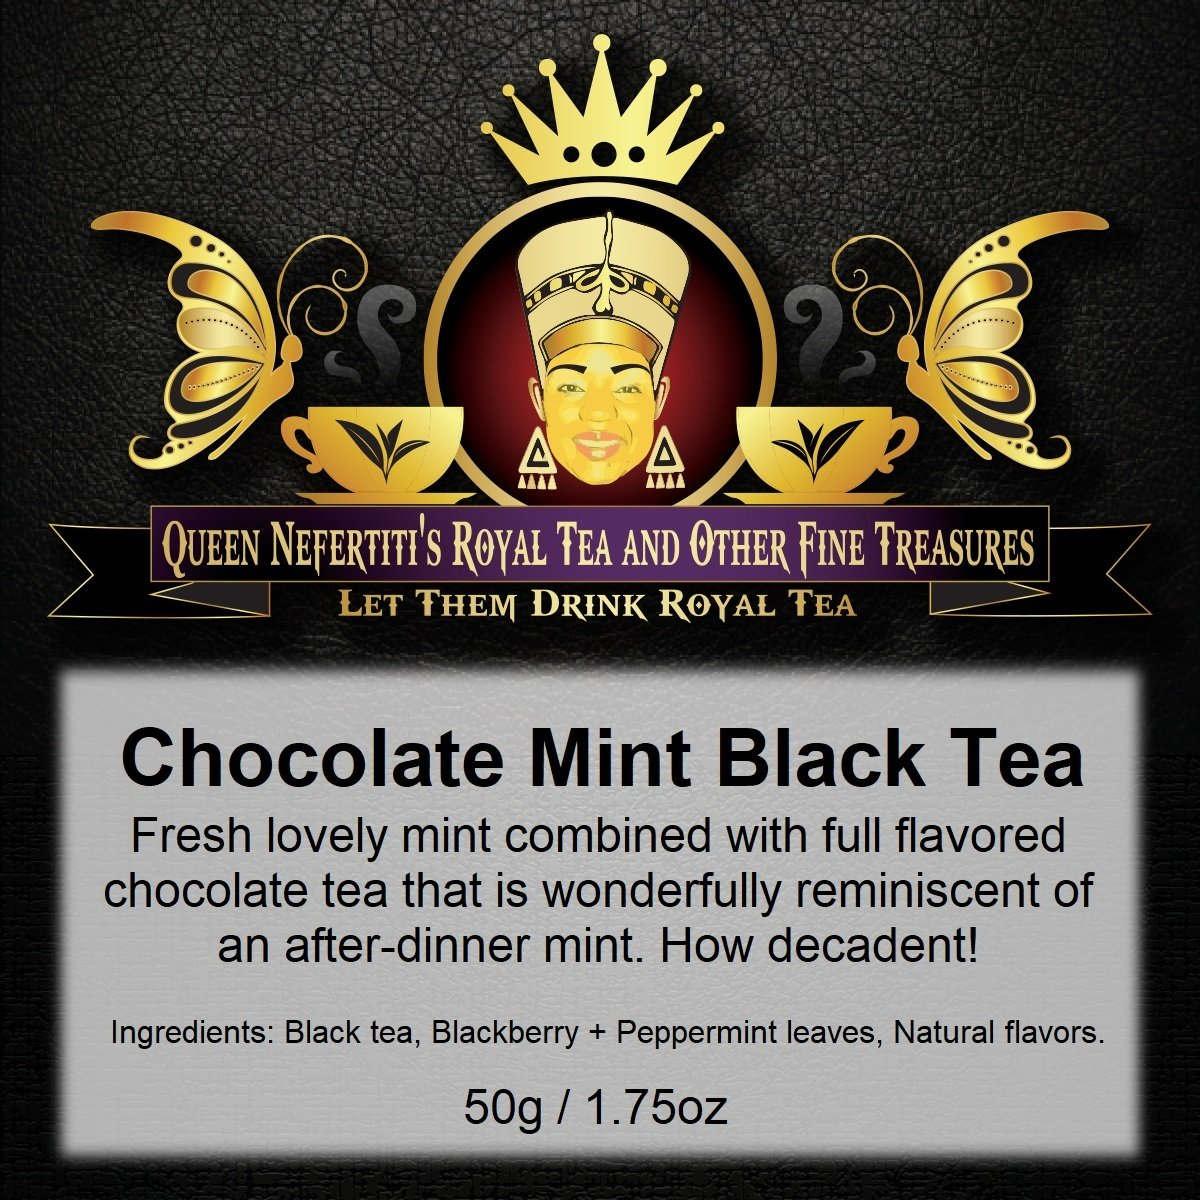 CHOCOLATE MINT BLACK TEA 50 G